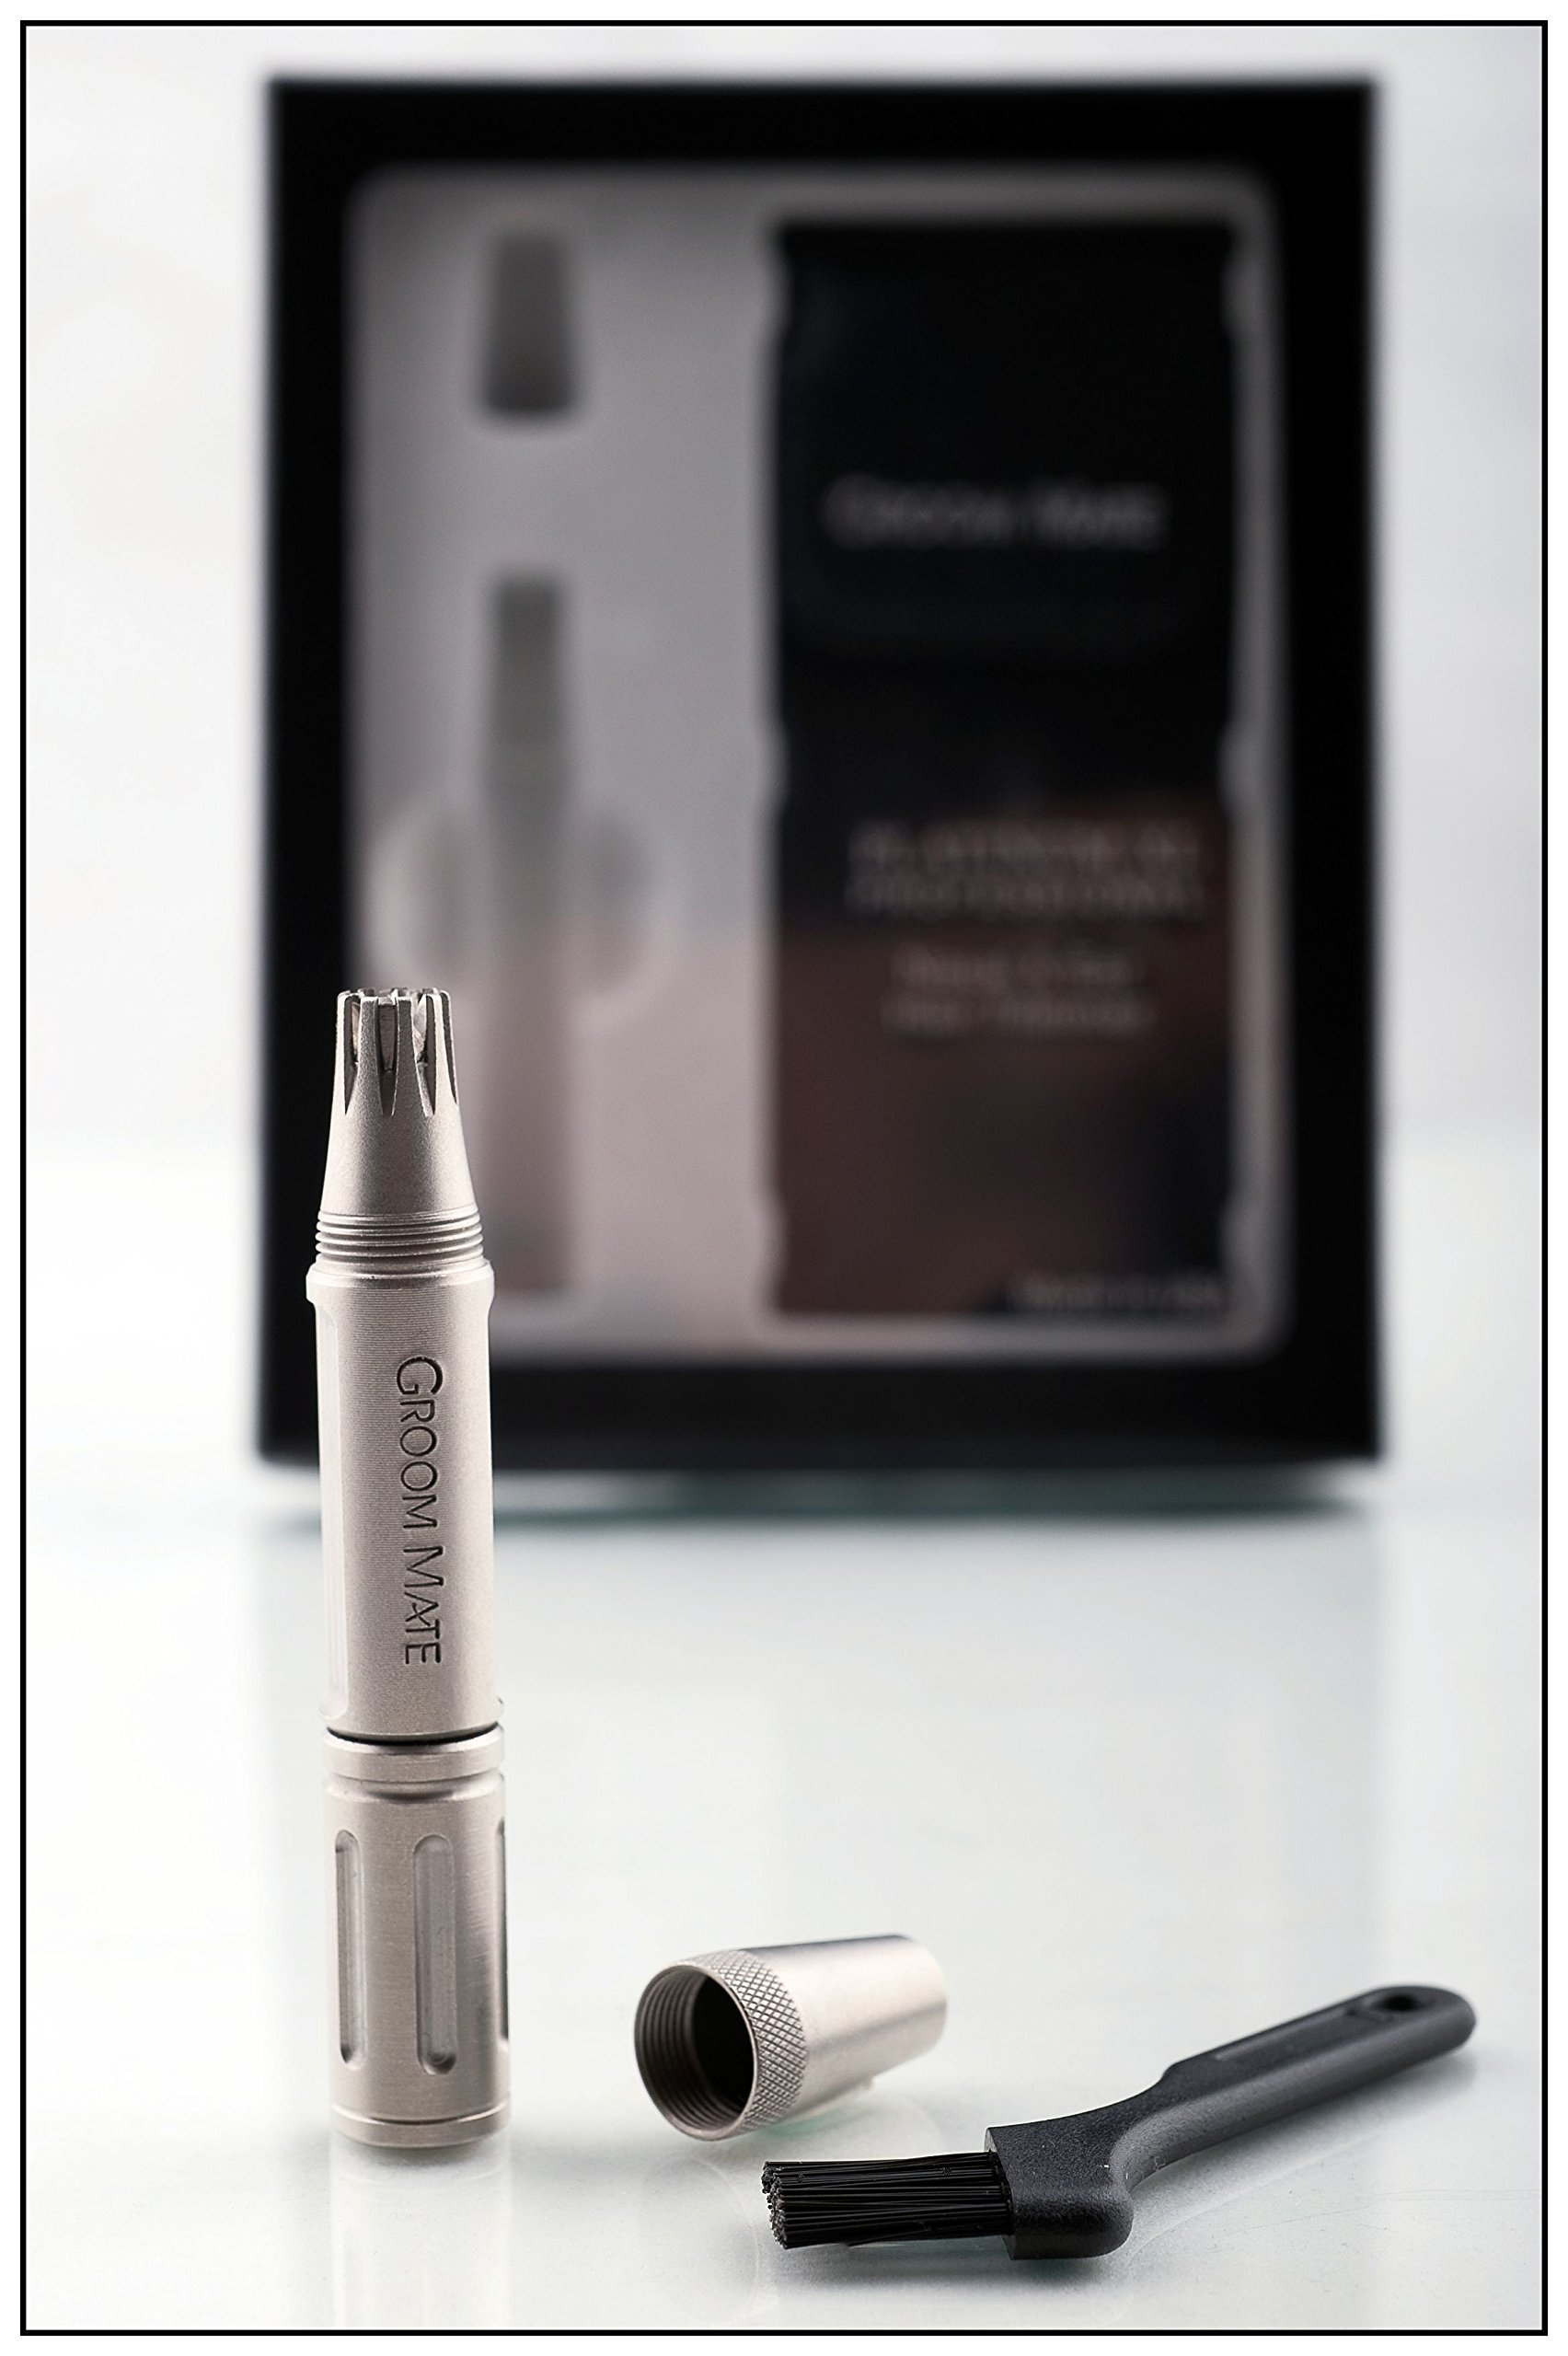 Groom Mate Platinum XL Professional Nasal/Nose & Ear Hair Trimmer w/Lifetime Warranty & Made in The USA by Groom Mate